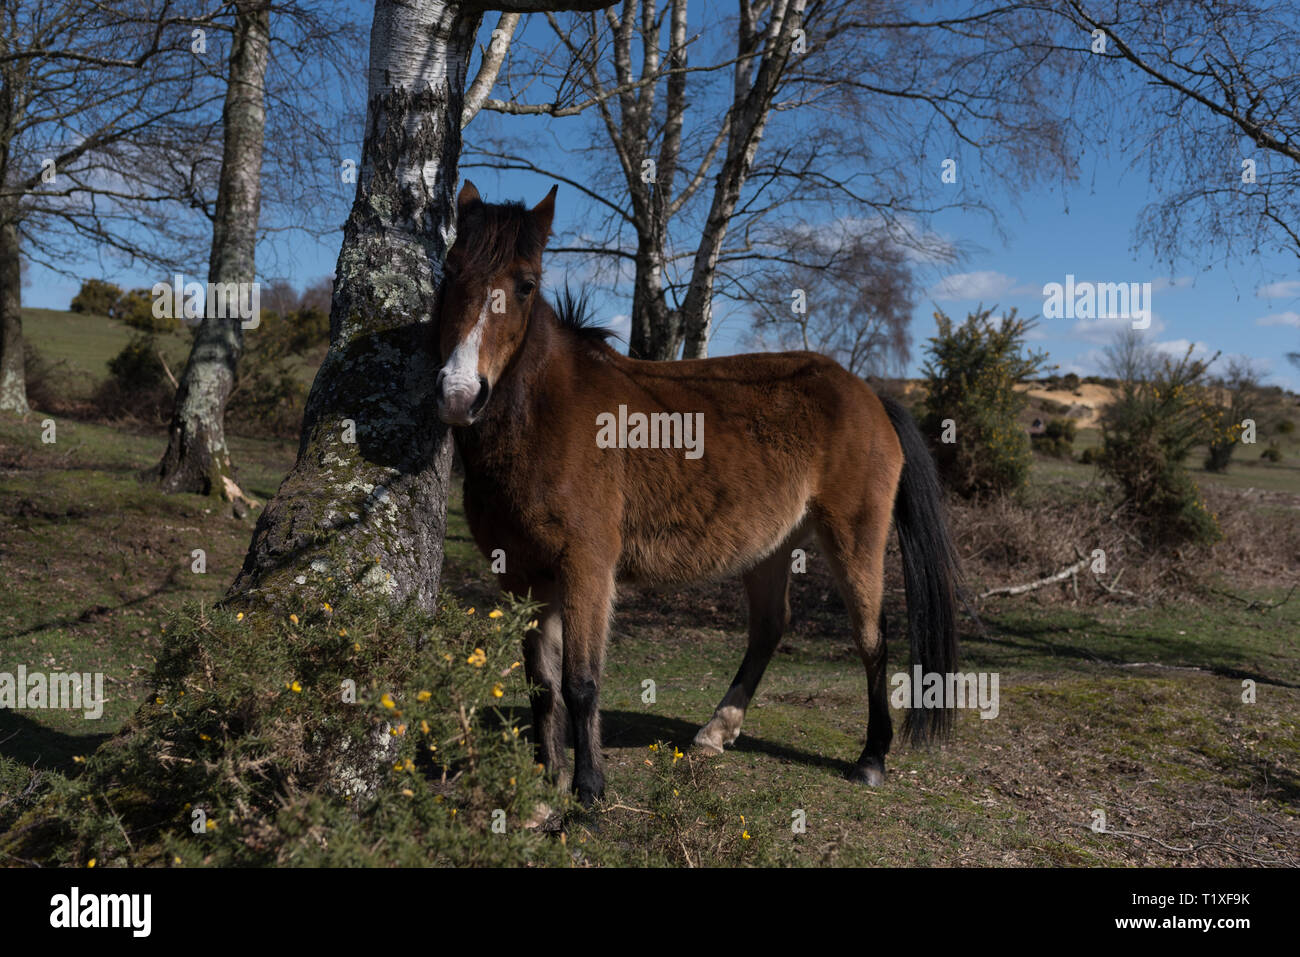 New forest scene with ponies and horses - Stock Image